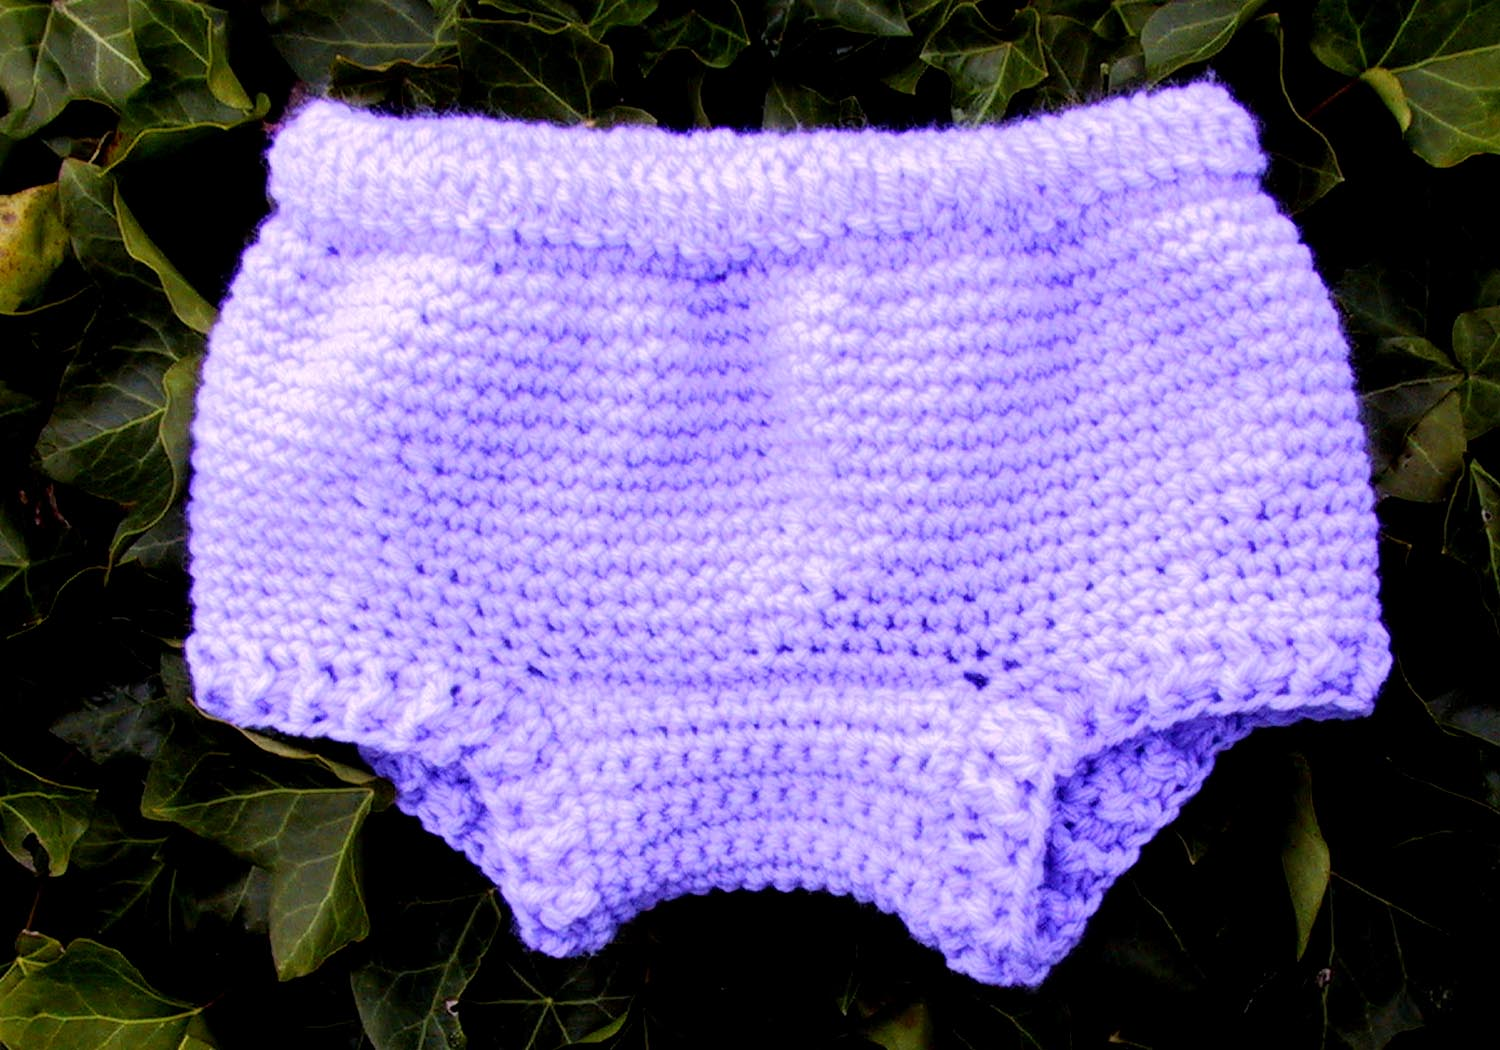 Crochet Diaper Cover Pattern | NeedleCraft Galore